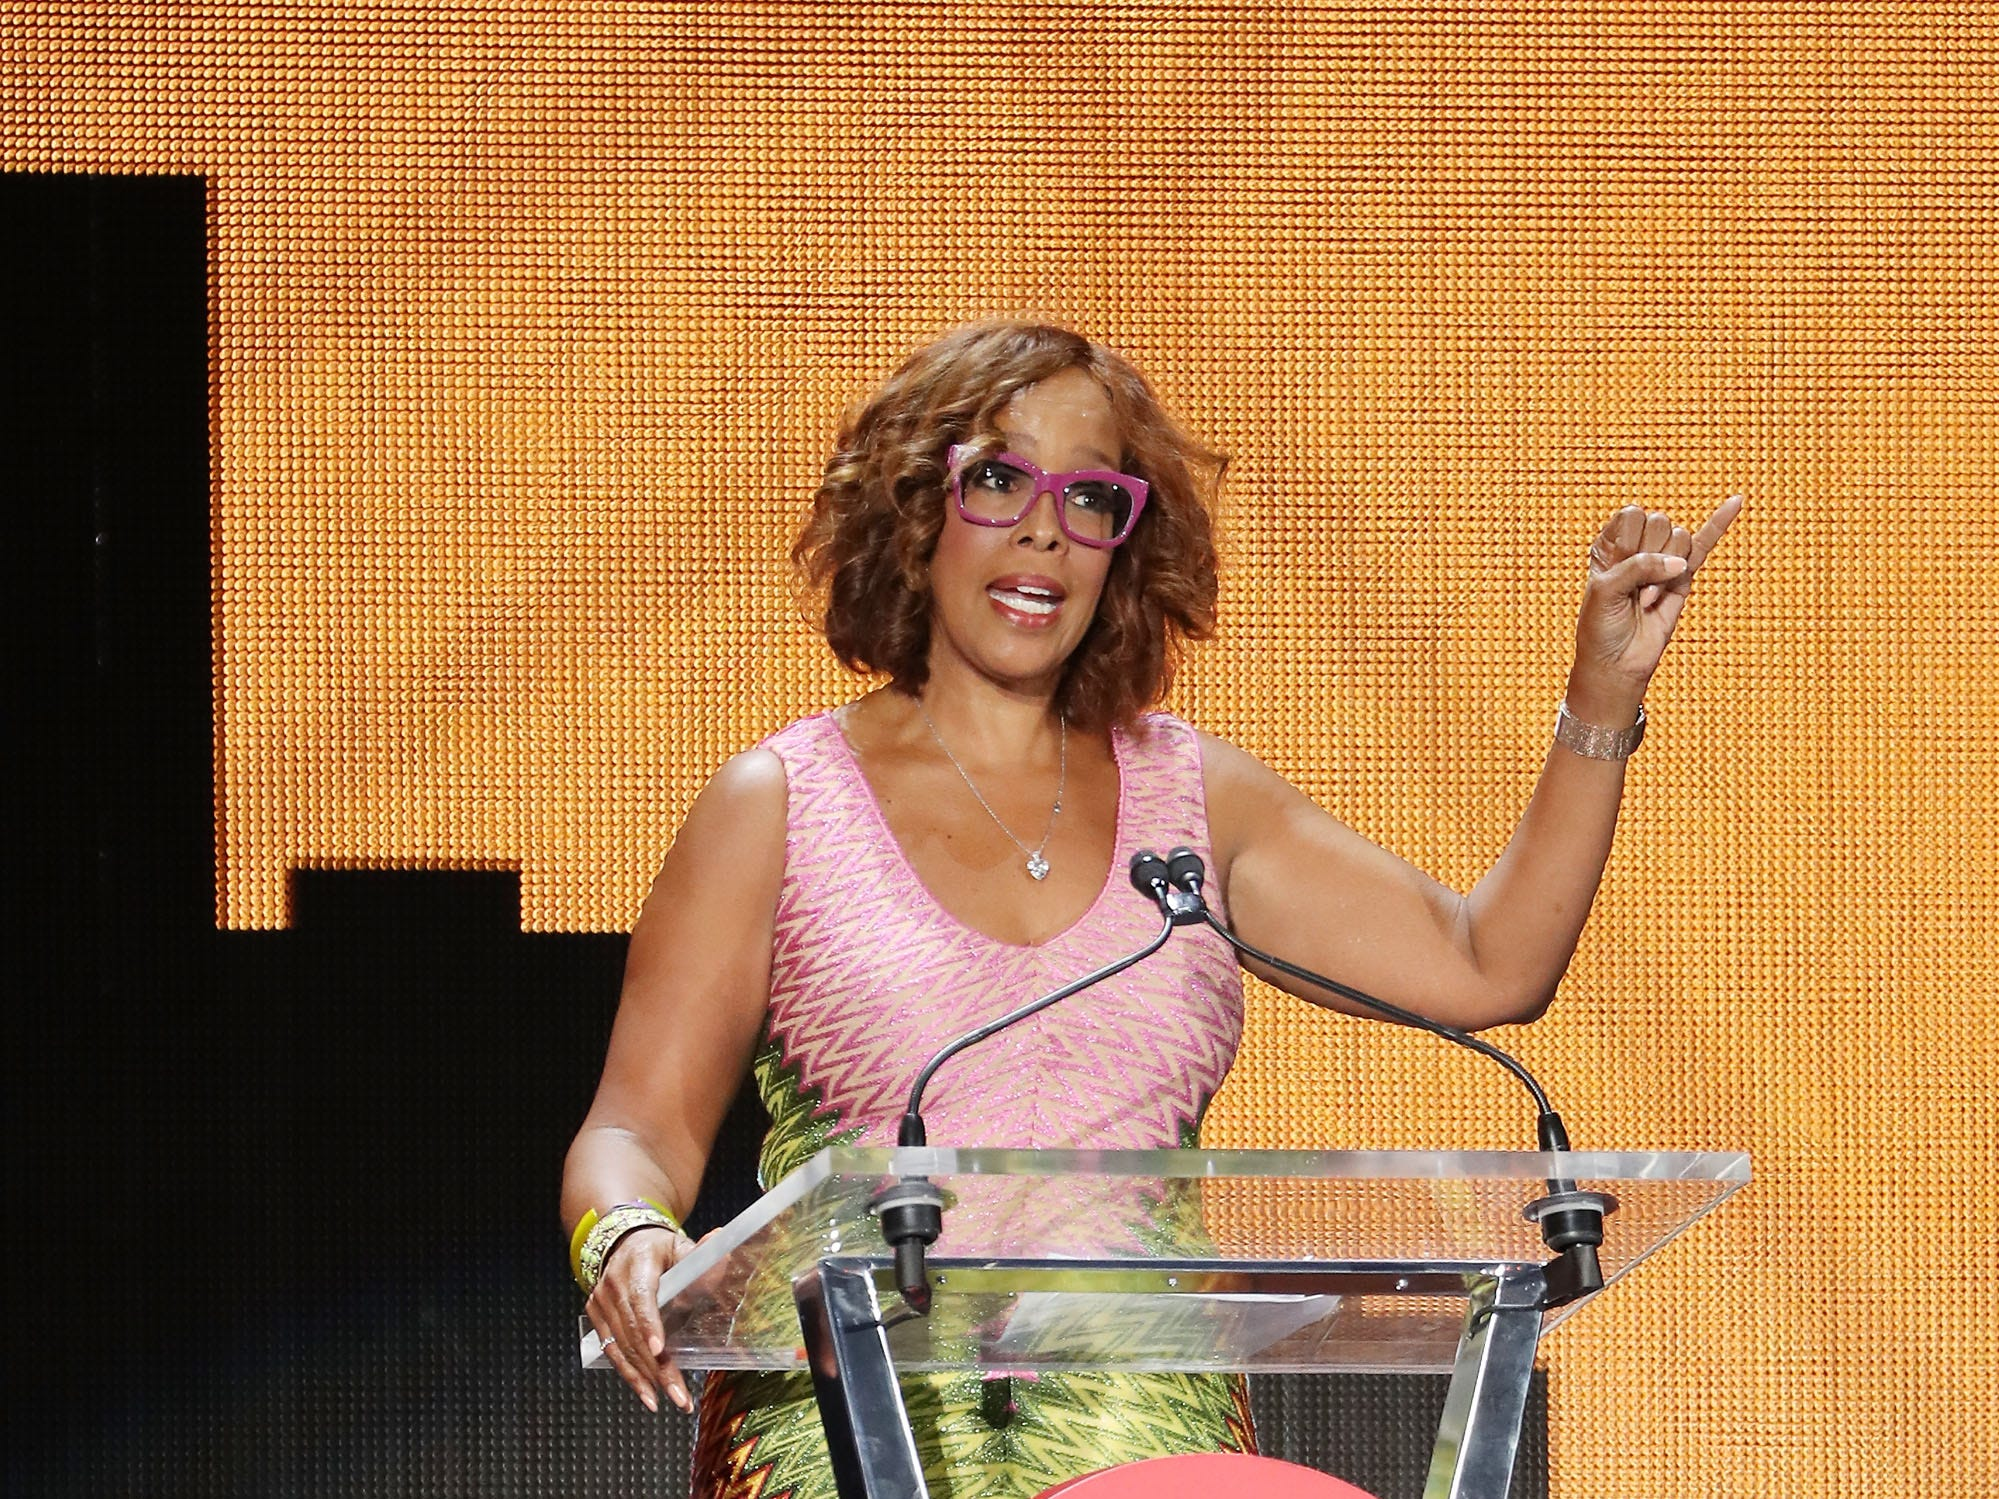 JOHANNESBURG, SOUTH AFRICA - DECEMBER 02:  Gayle King speaks on stage during the Global Citizen Festival: Mandela 100 at FNB Stadium on December 2, 2018 in Johannesburg, South Africa.  (Photo by Jemal Countess/Getty Images for Global Citizen Festival: Mandela 100) ORG XMIT: 775264426 ORIG FILE ID: 1067716212